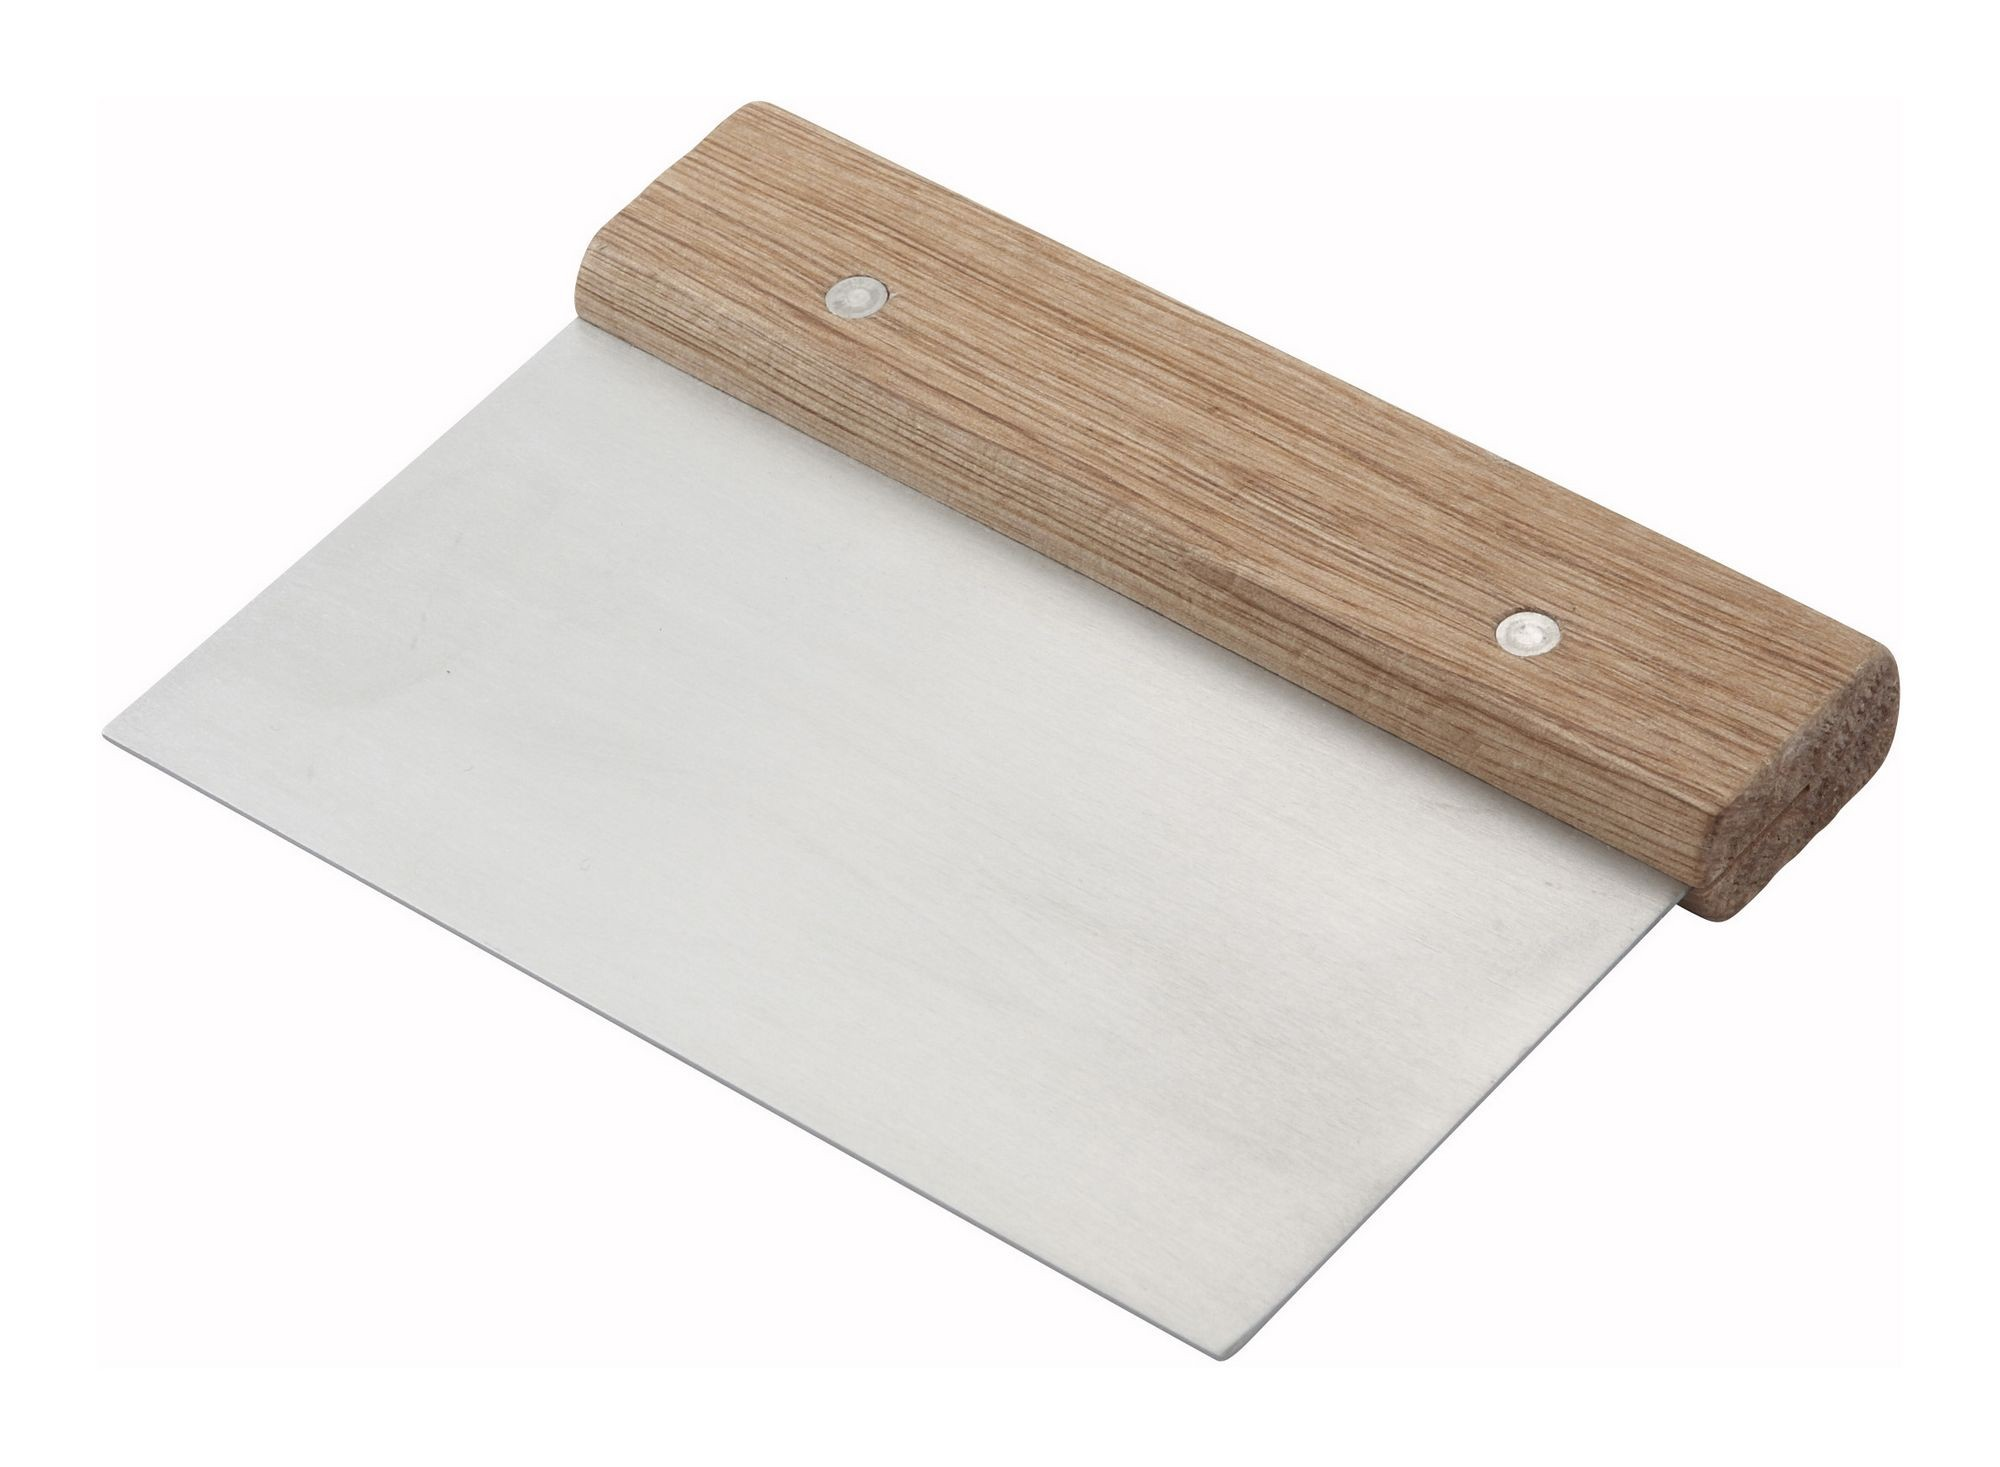 Stainless Steel Dough Scraper with Wood Handle